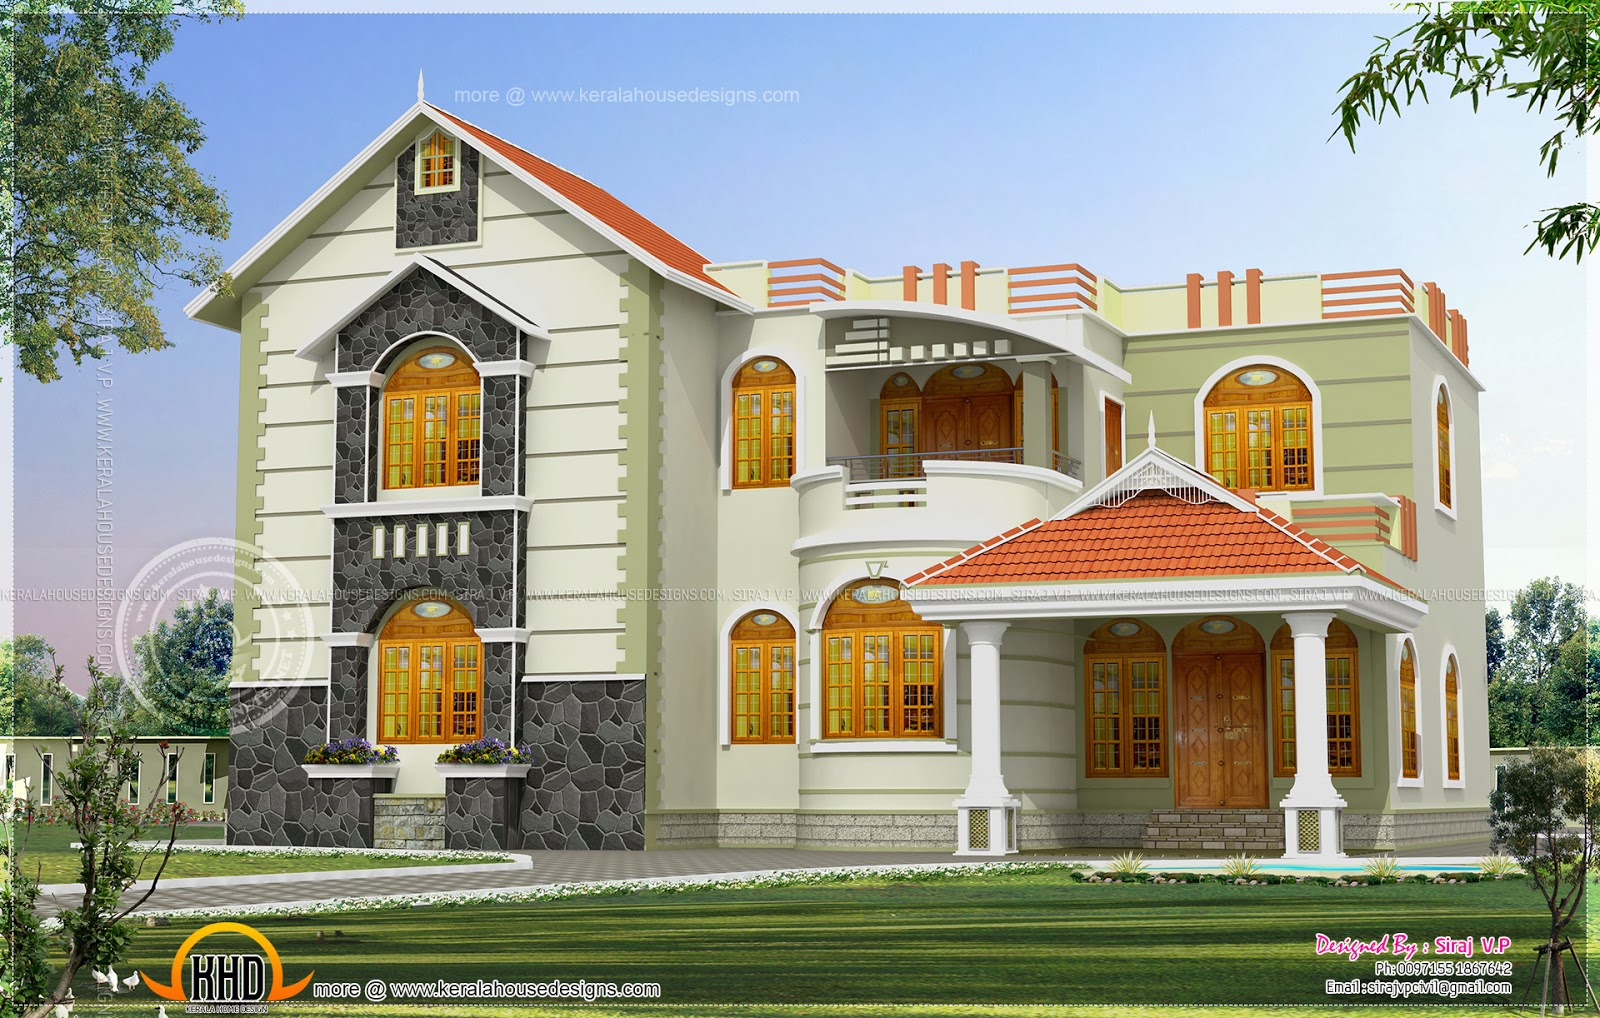 One house exterior design in two color combinations for House and design